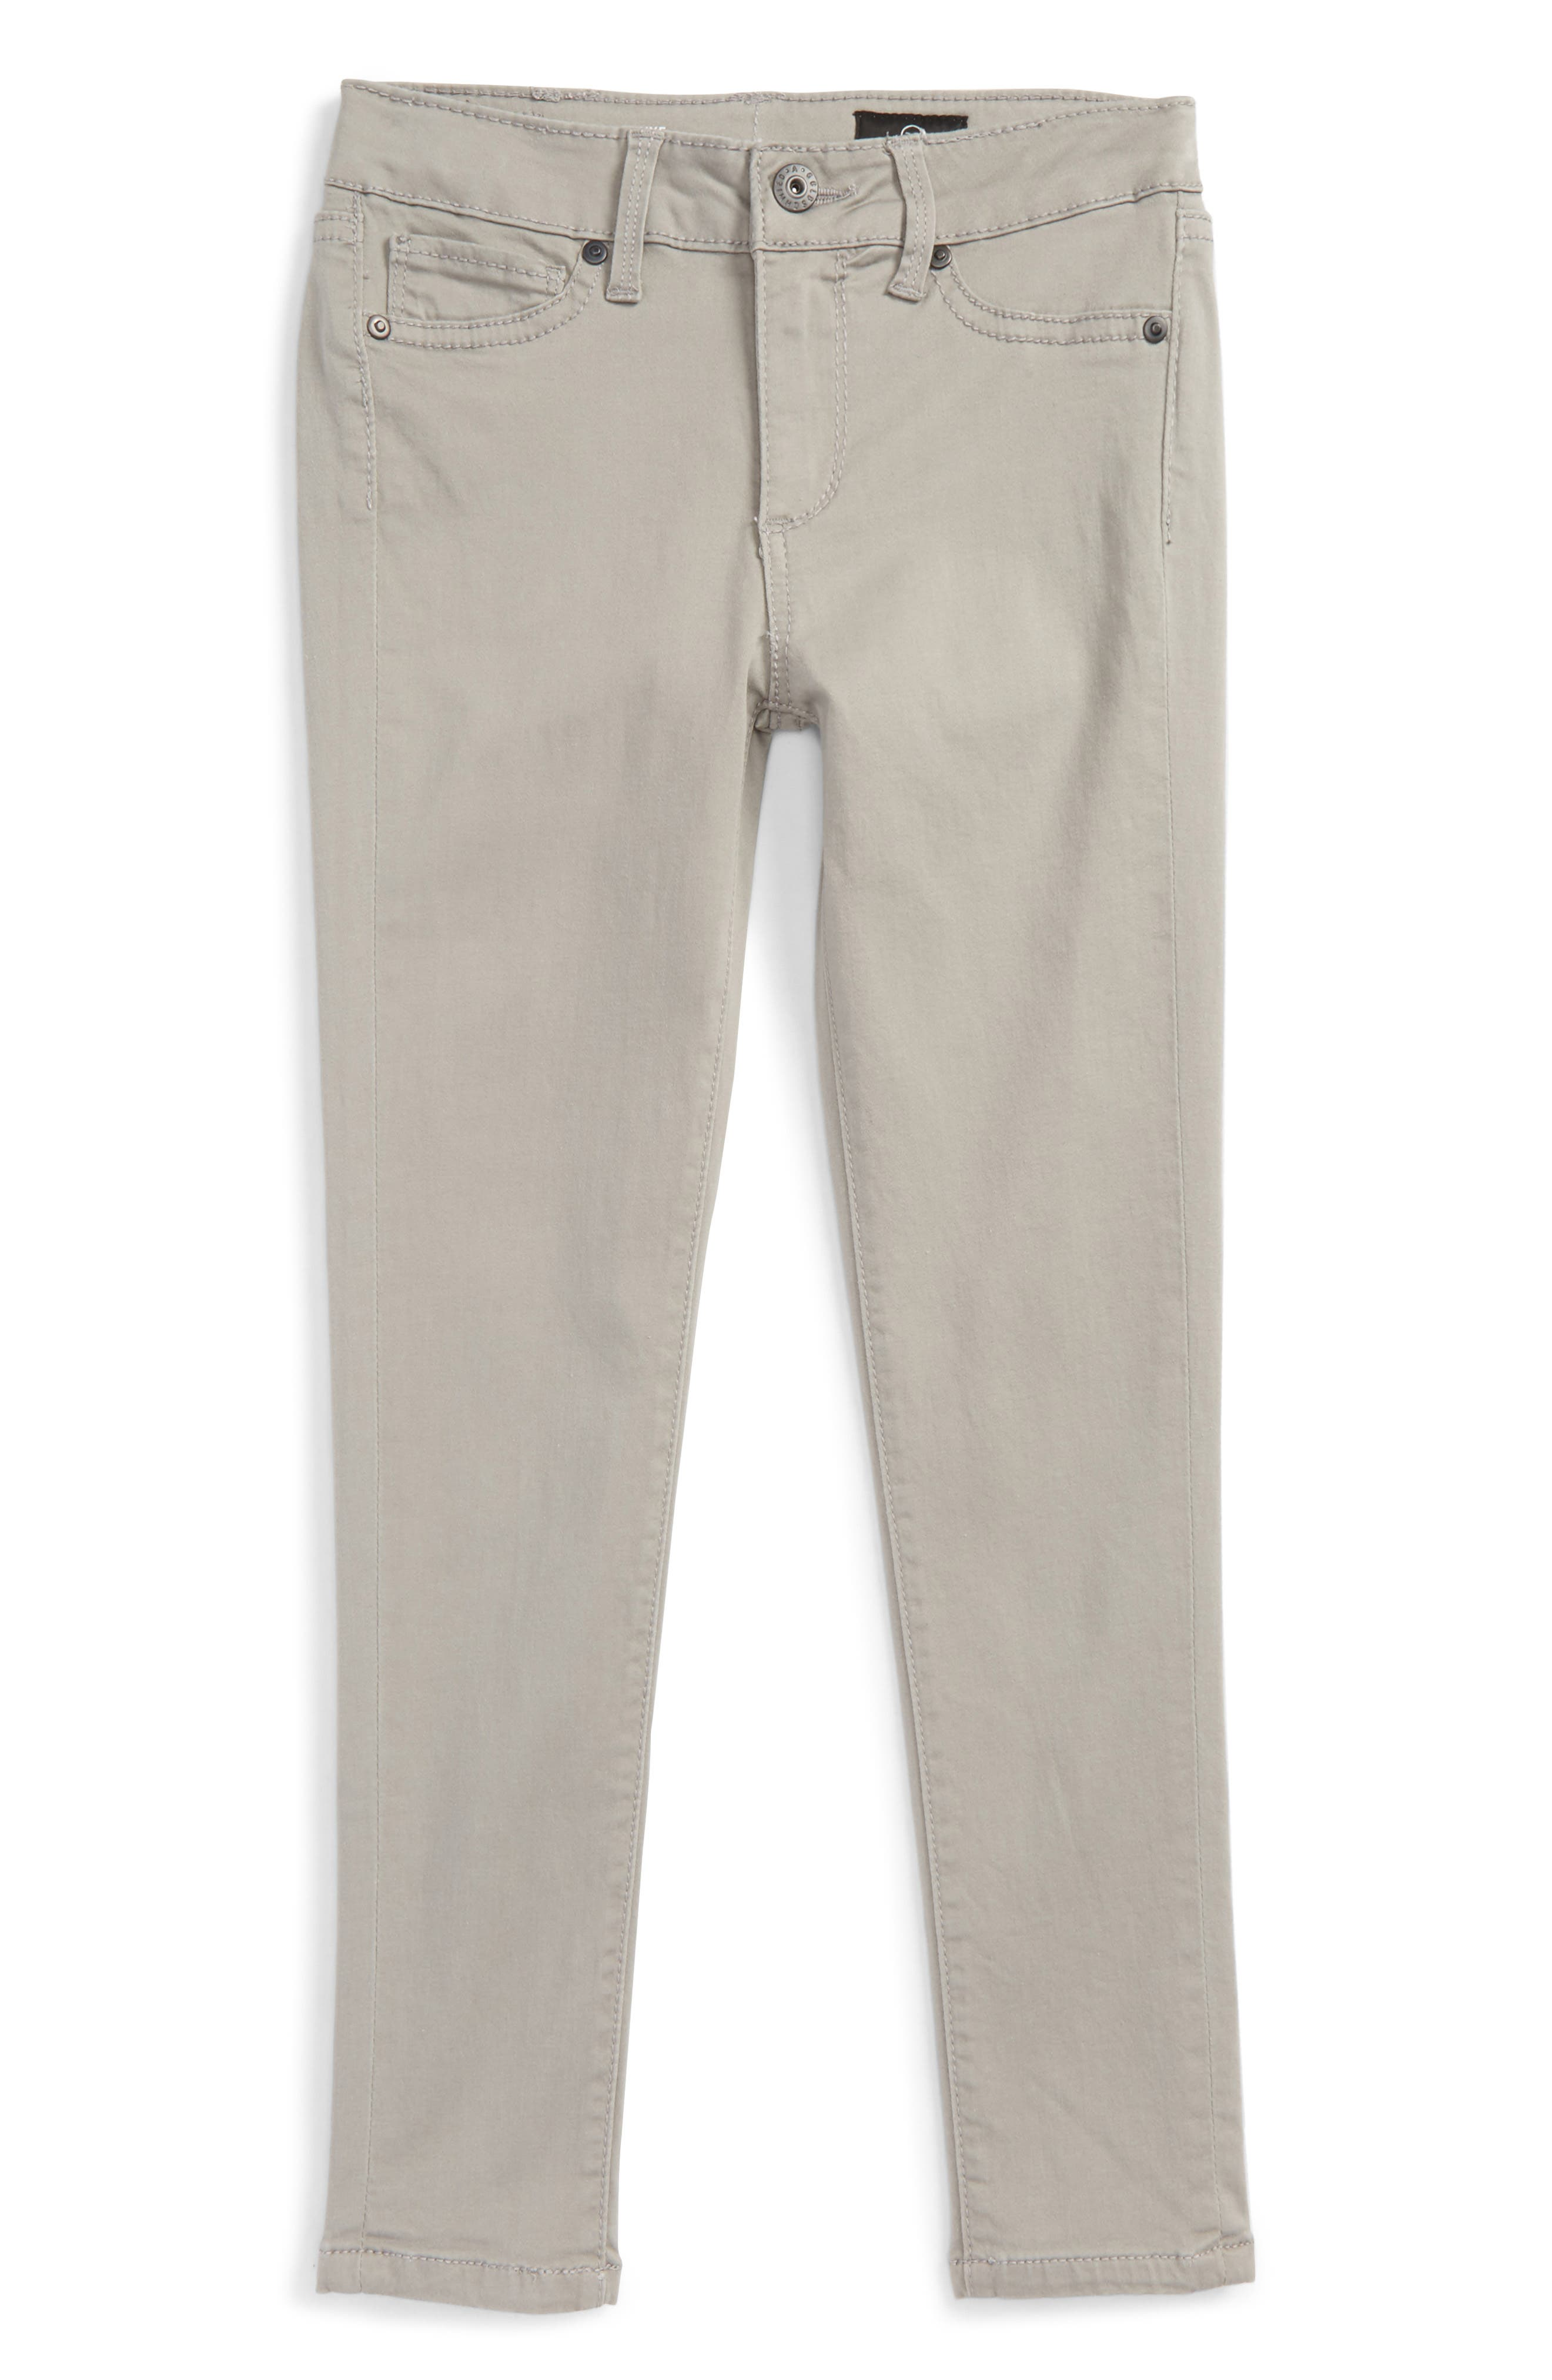 Twiggy Luxe Ankle Skinny Jeans,                         Main,                         color, 063